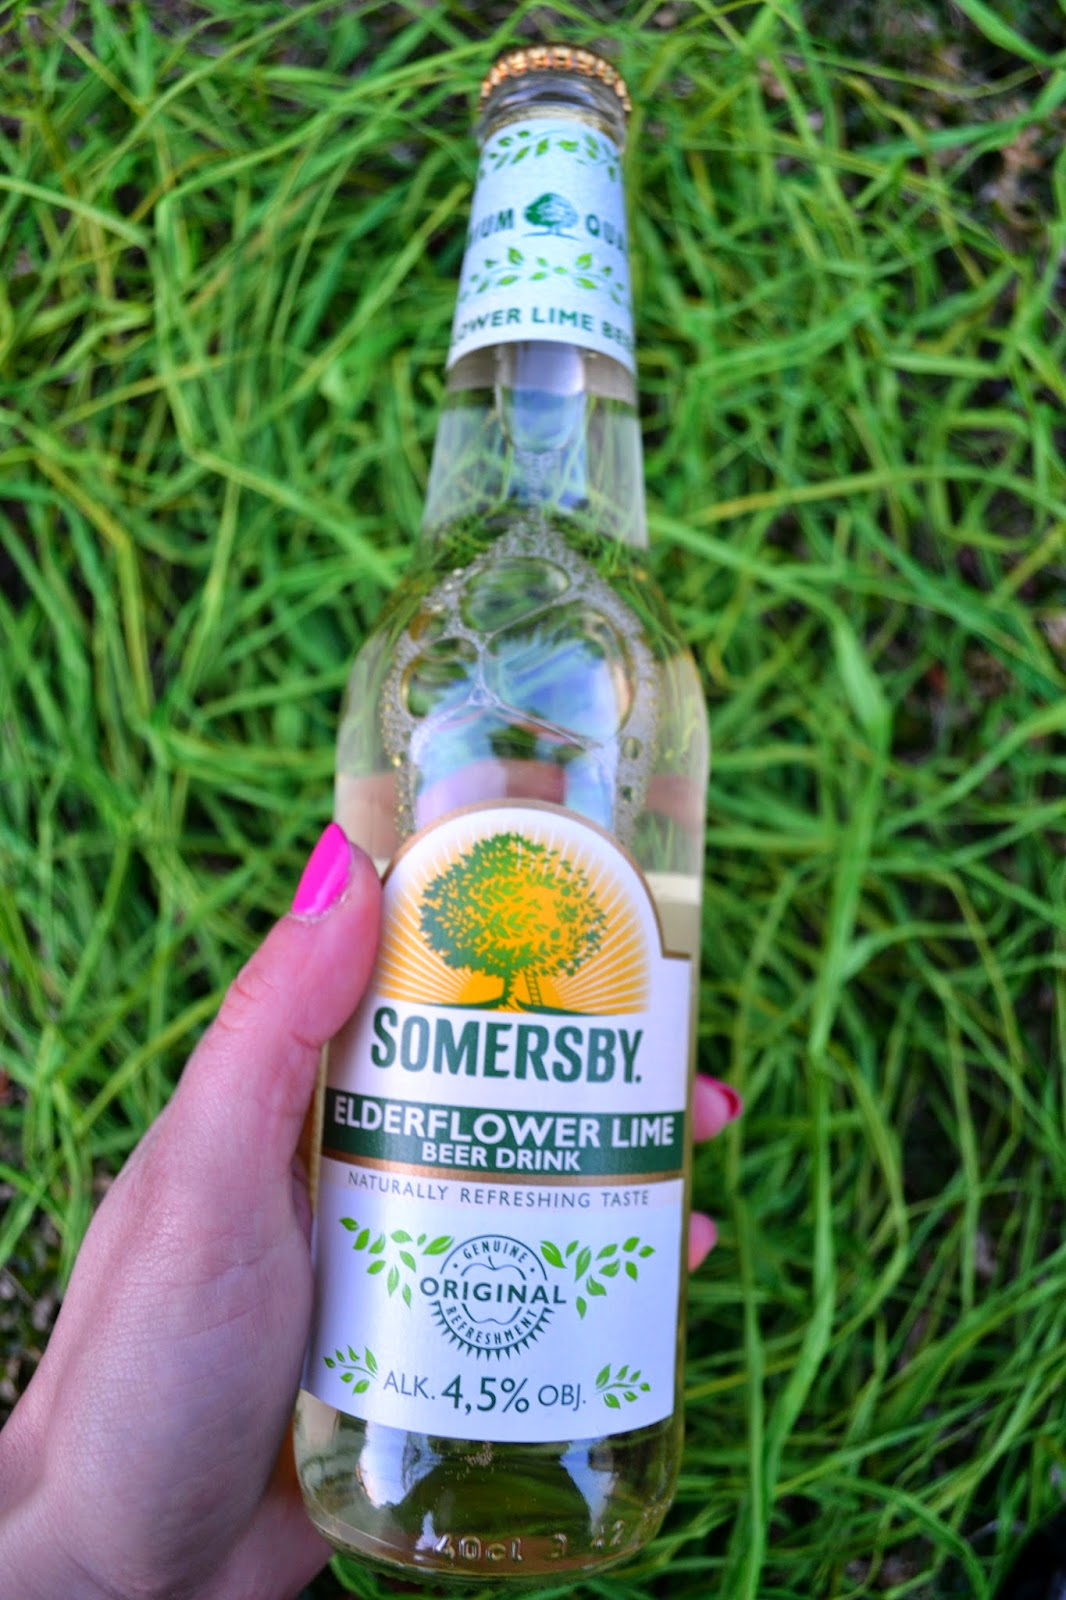 Somersby,ElderflowerLime